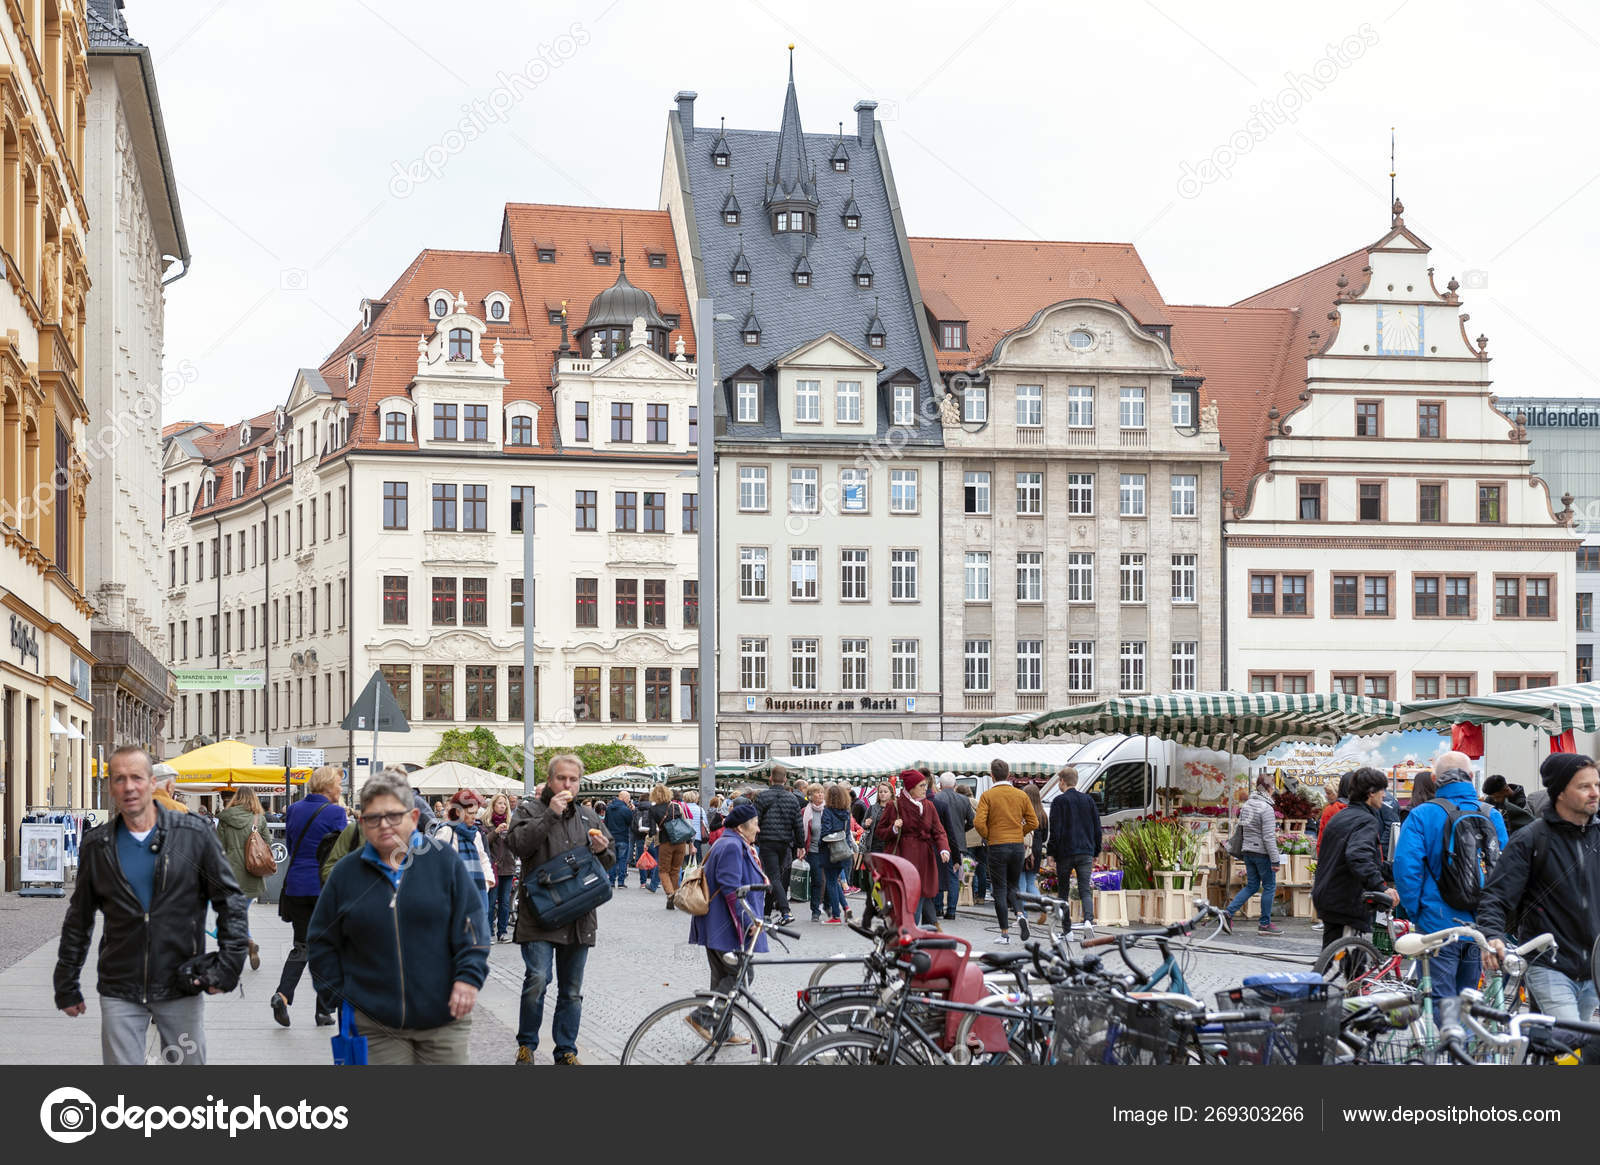 Leipzig Germany October 2018 Crowd At Marktplatz The Market Square In City Centre Of Leipzig In Germany Surrounded By Historic Buildings Stock Editorial Photo C Jiggotravel 269303266